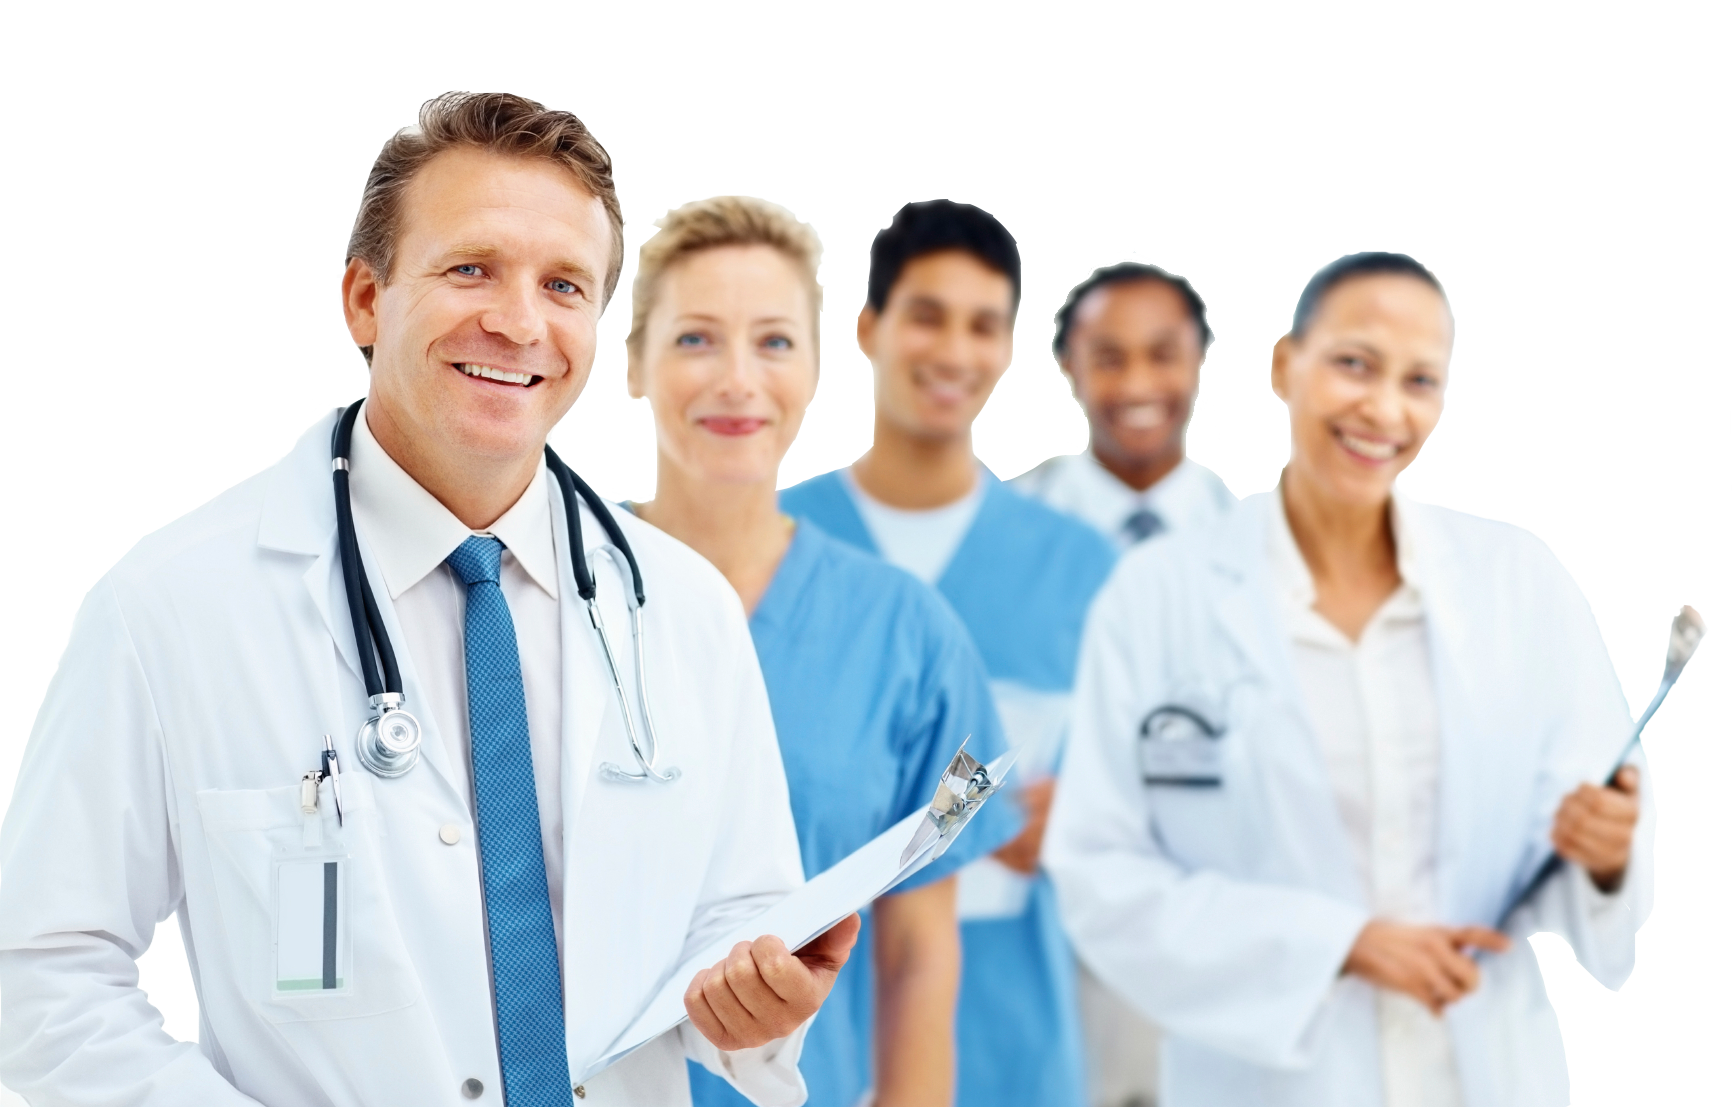 Best Doctors Network For Texas Workers Compensation Personal Injury And Auto Patients